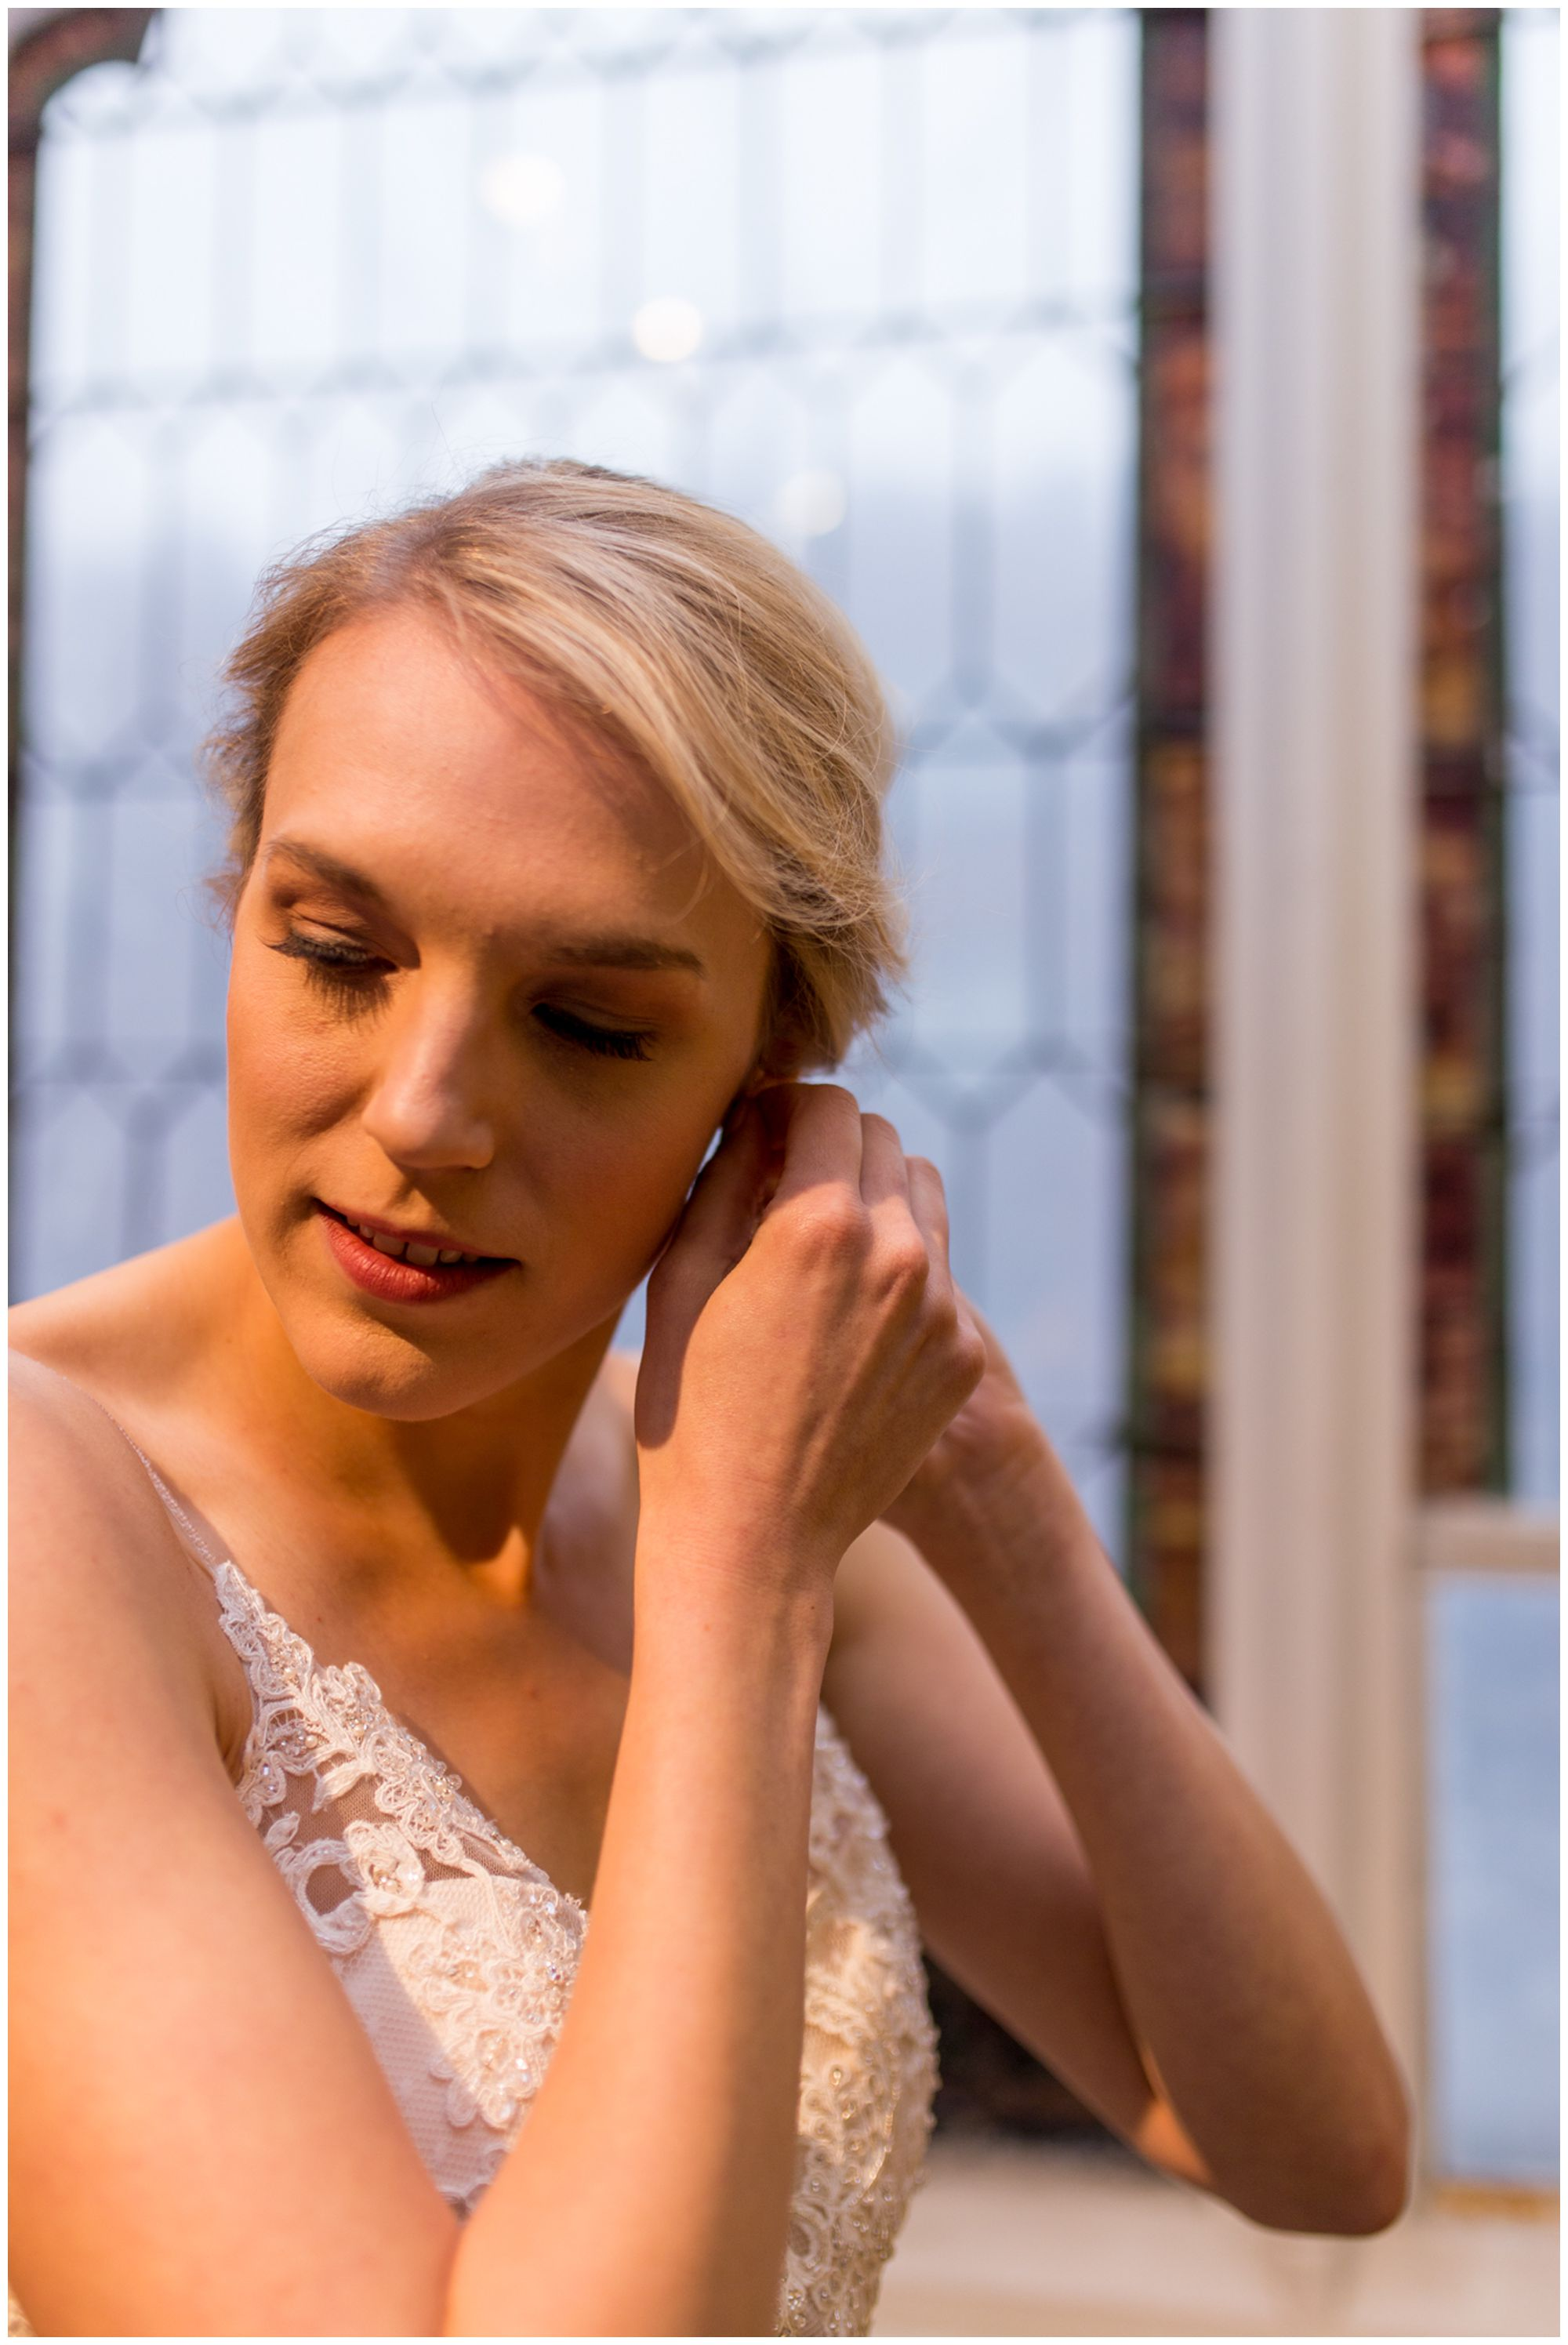 bride putting in earrings before wedding at Redeemer Presbyterian Church in Indianapolis